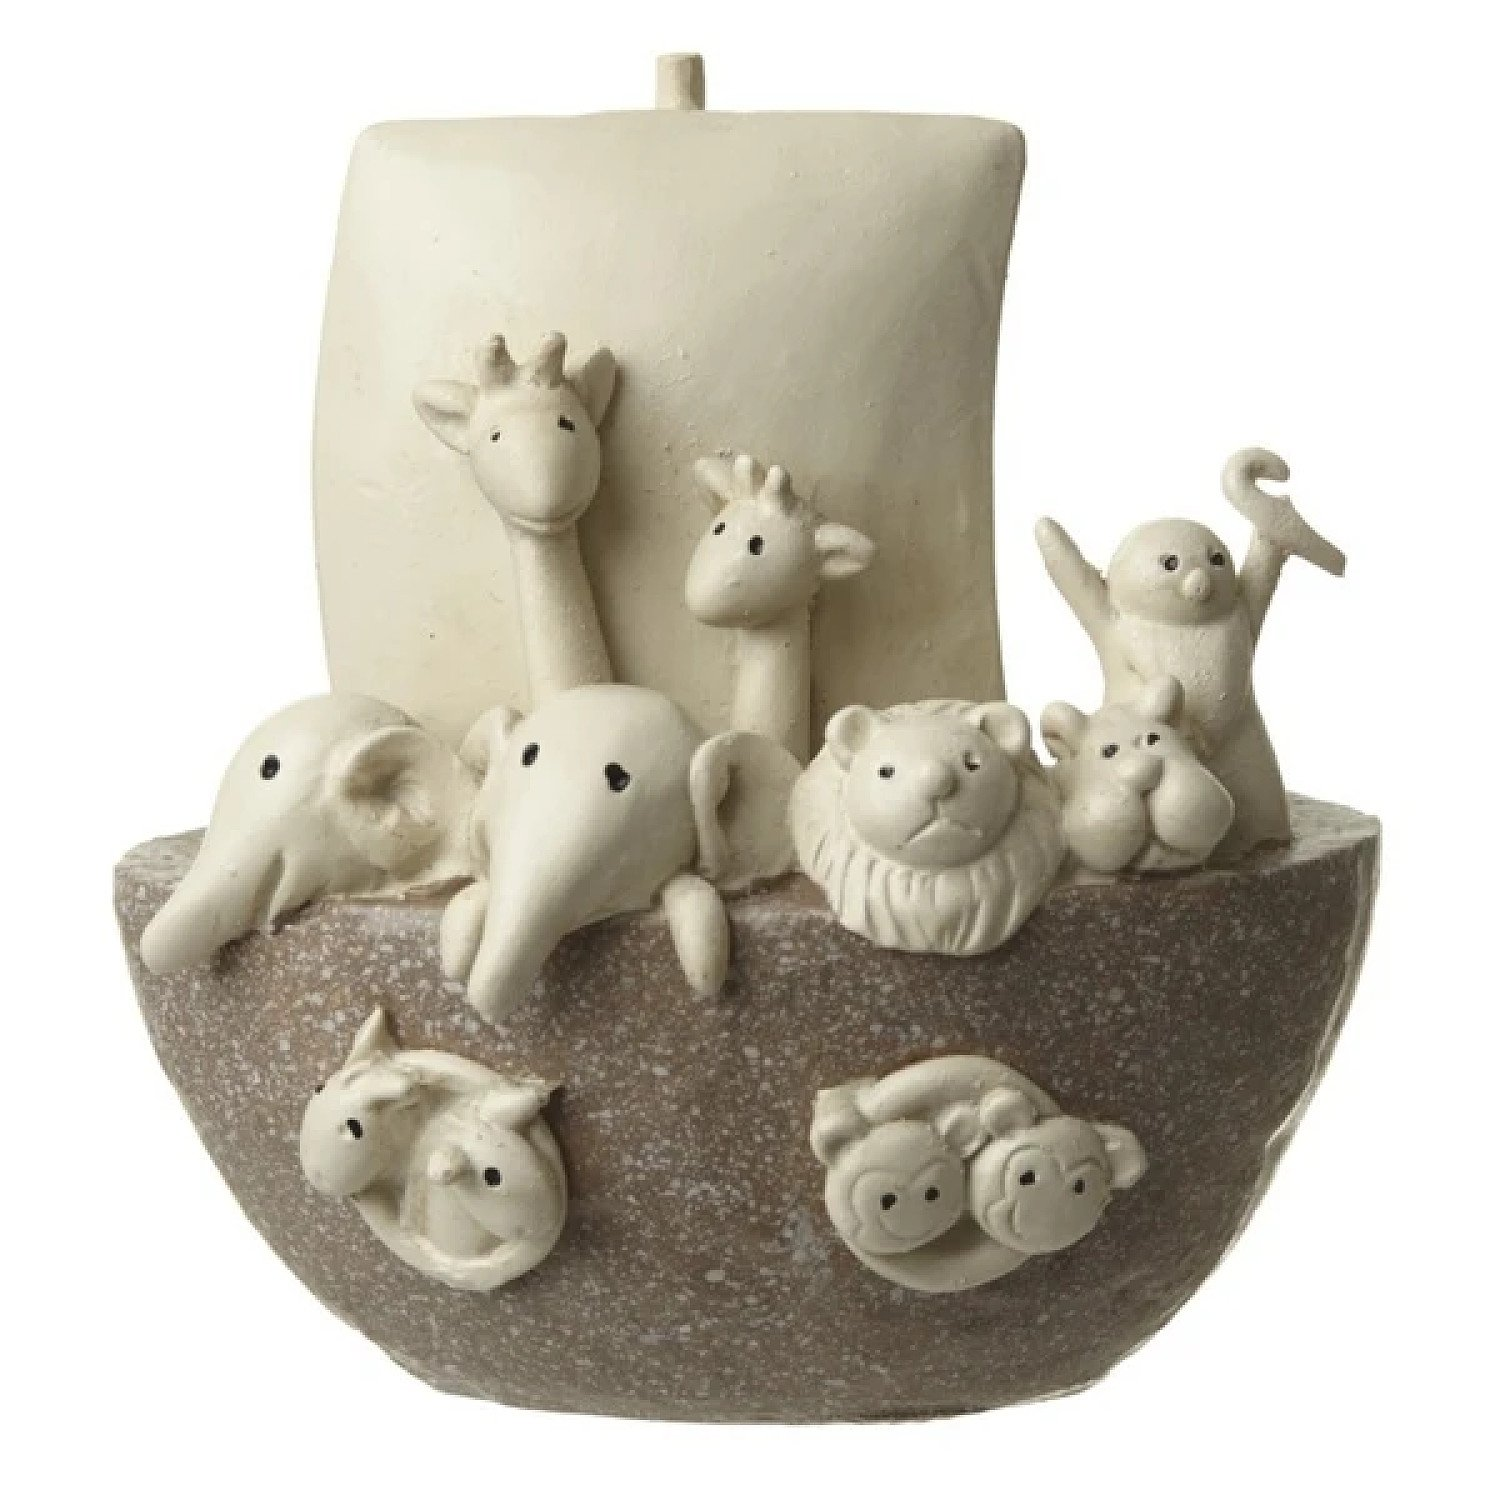 Polyresin Noahs Ark Decor £12.99 Free Postage